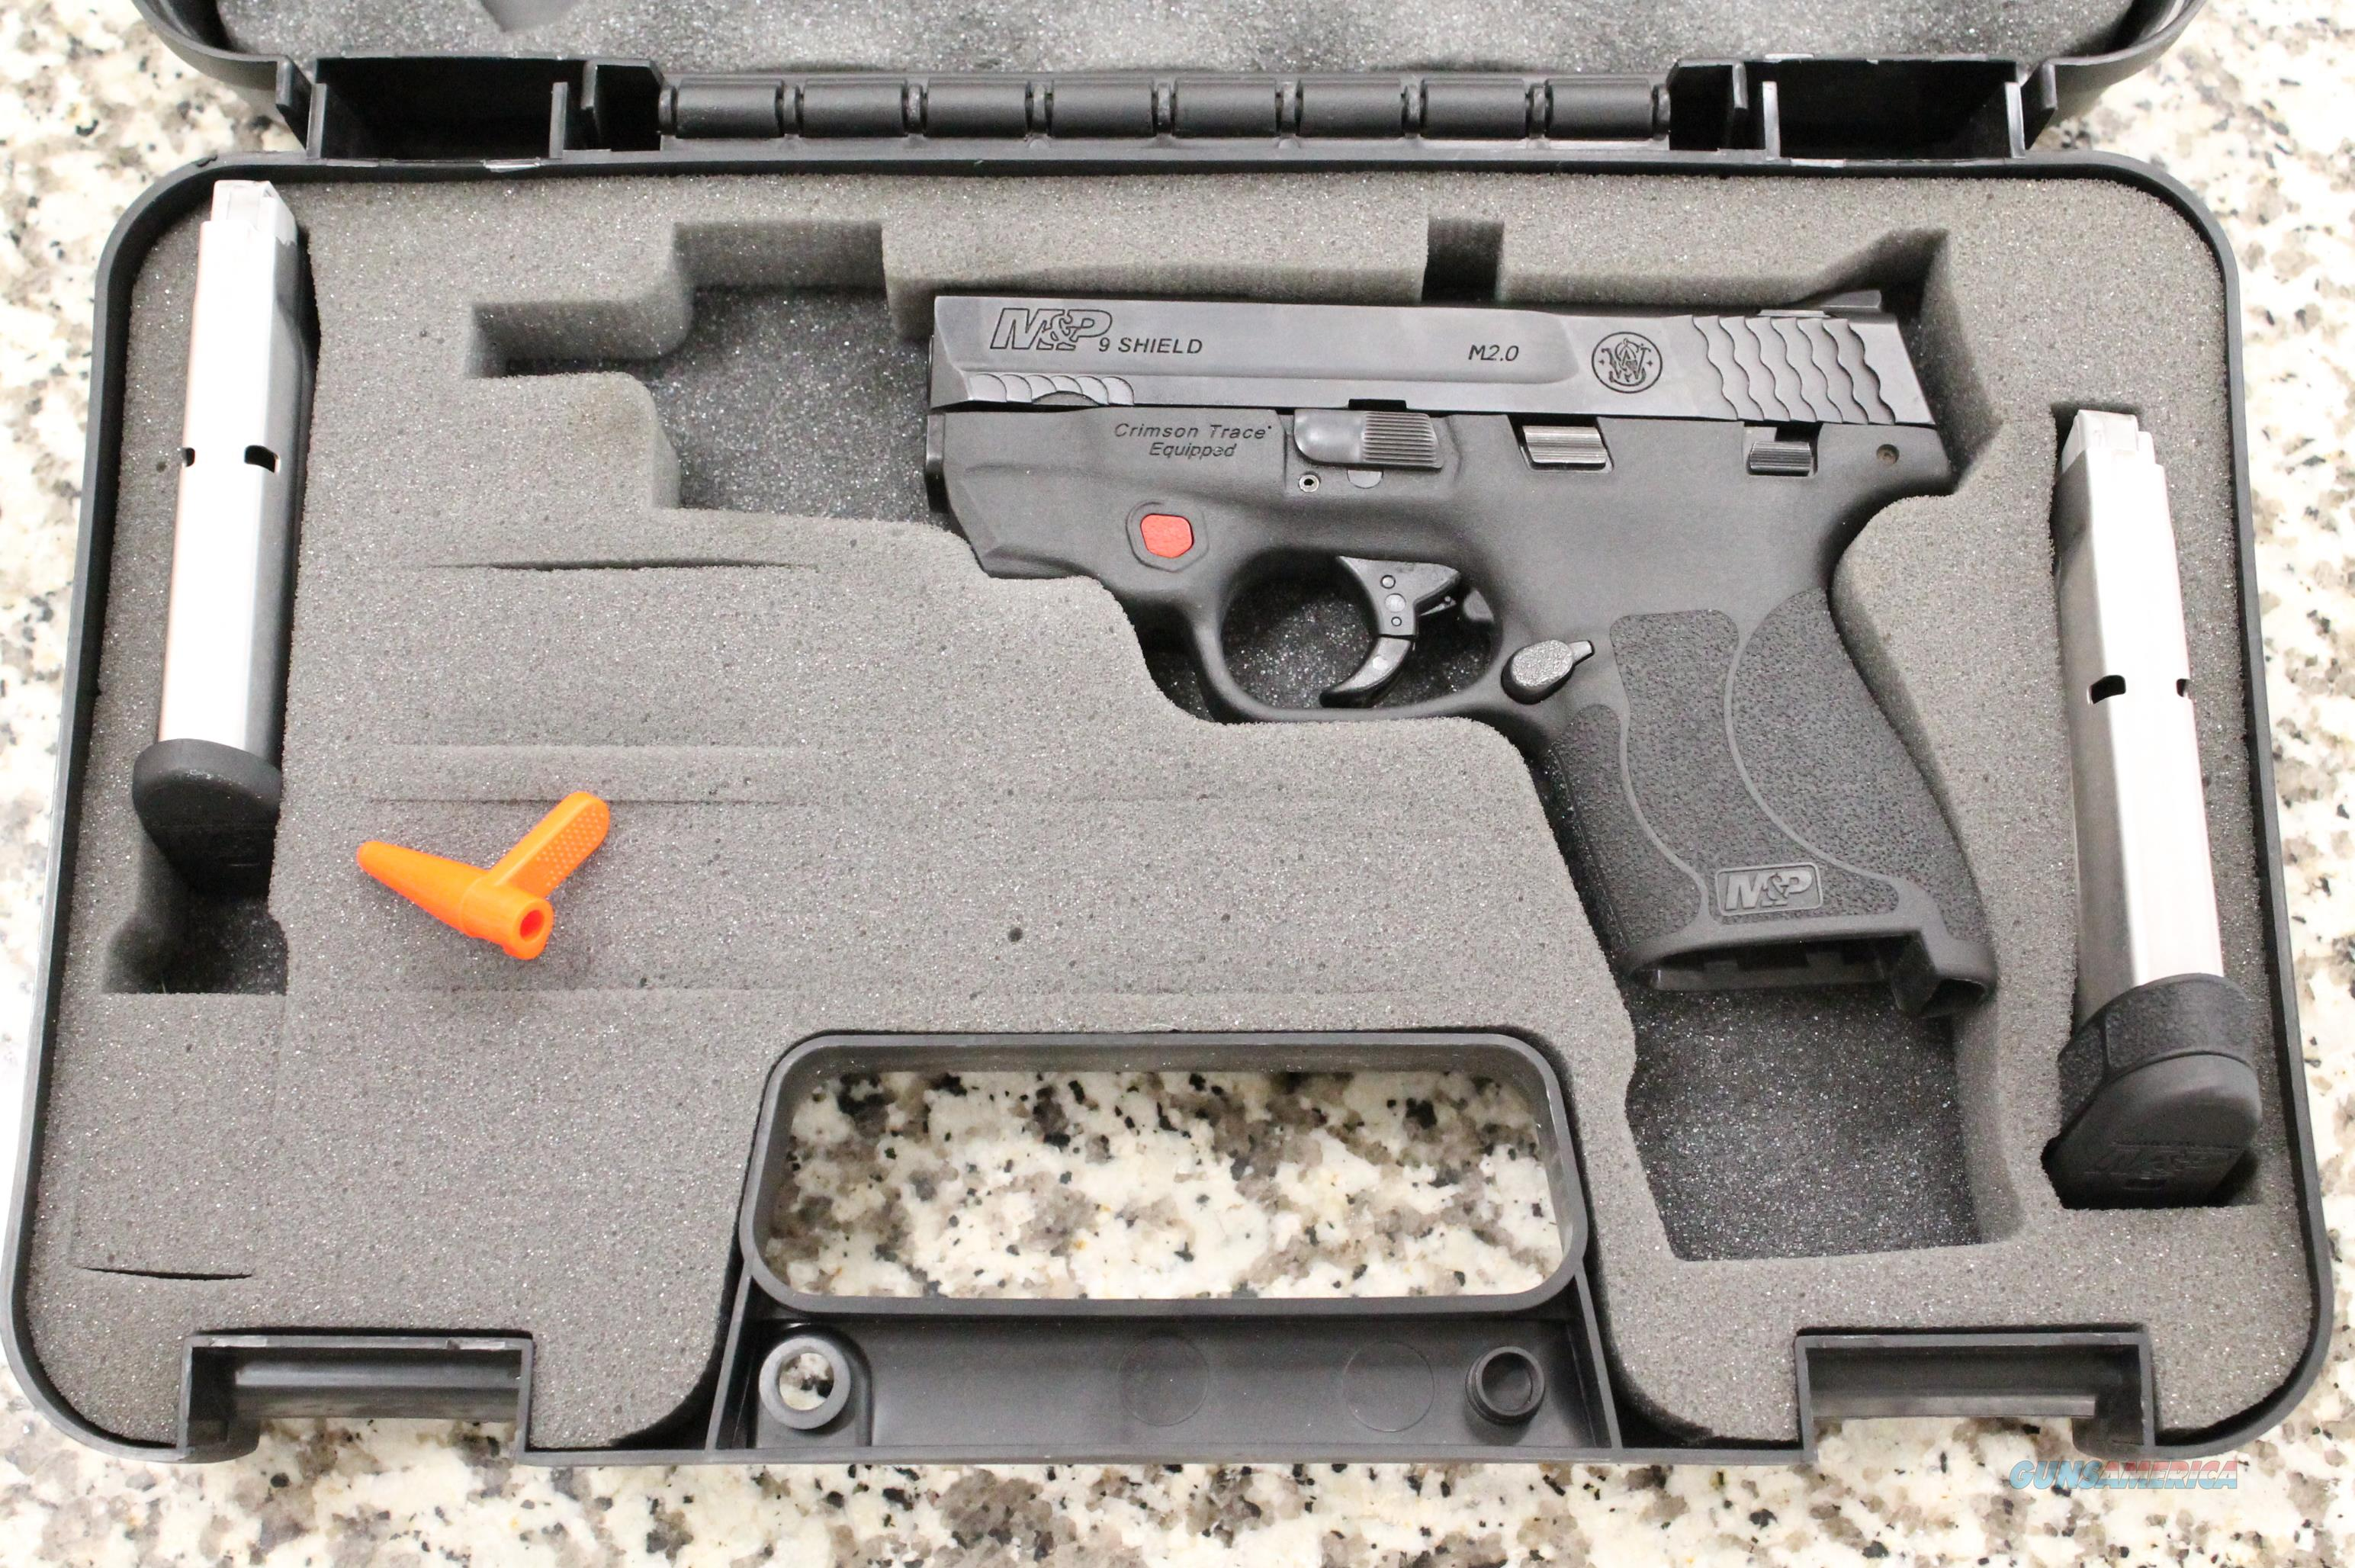 Smith & Wesson 9 Shield M2.0 Crimson Trace 9mm Pistol, 2 Mags, Hard Case  Guns > Pistols > Smith & Wesson Pistols - Autos > Shield